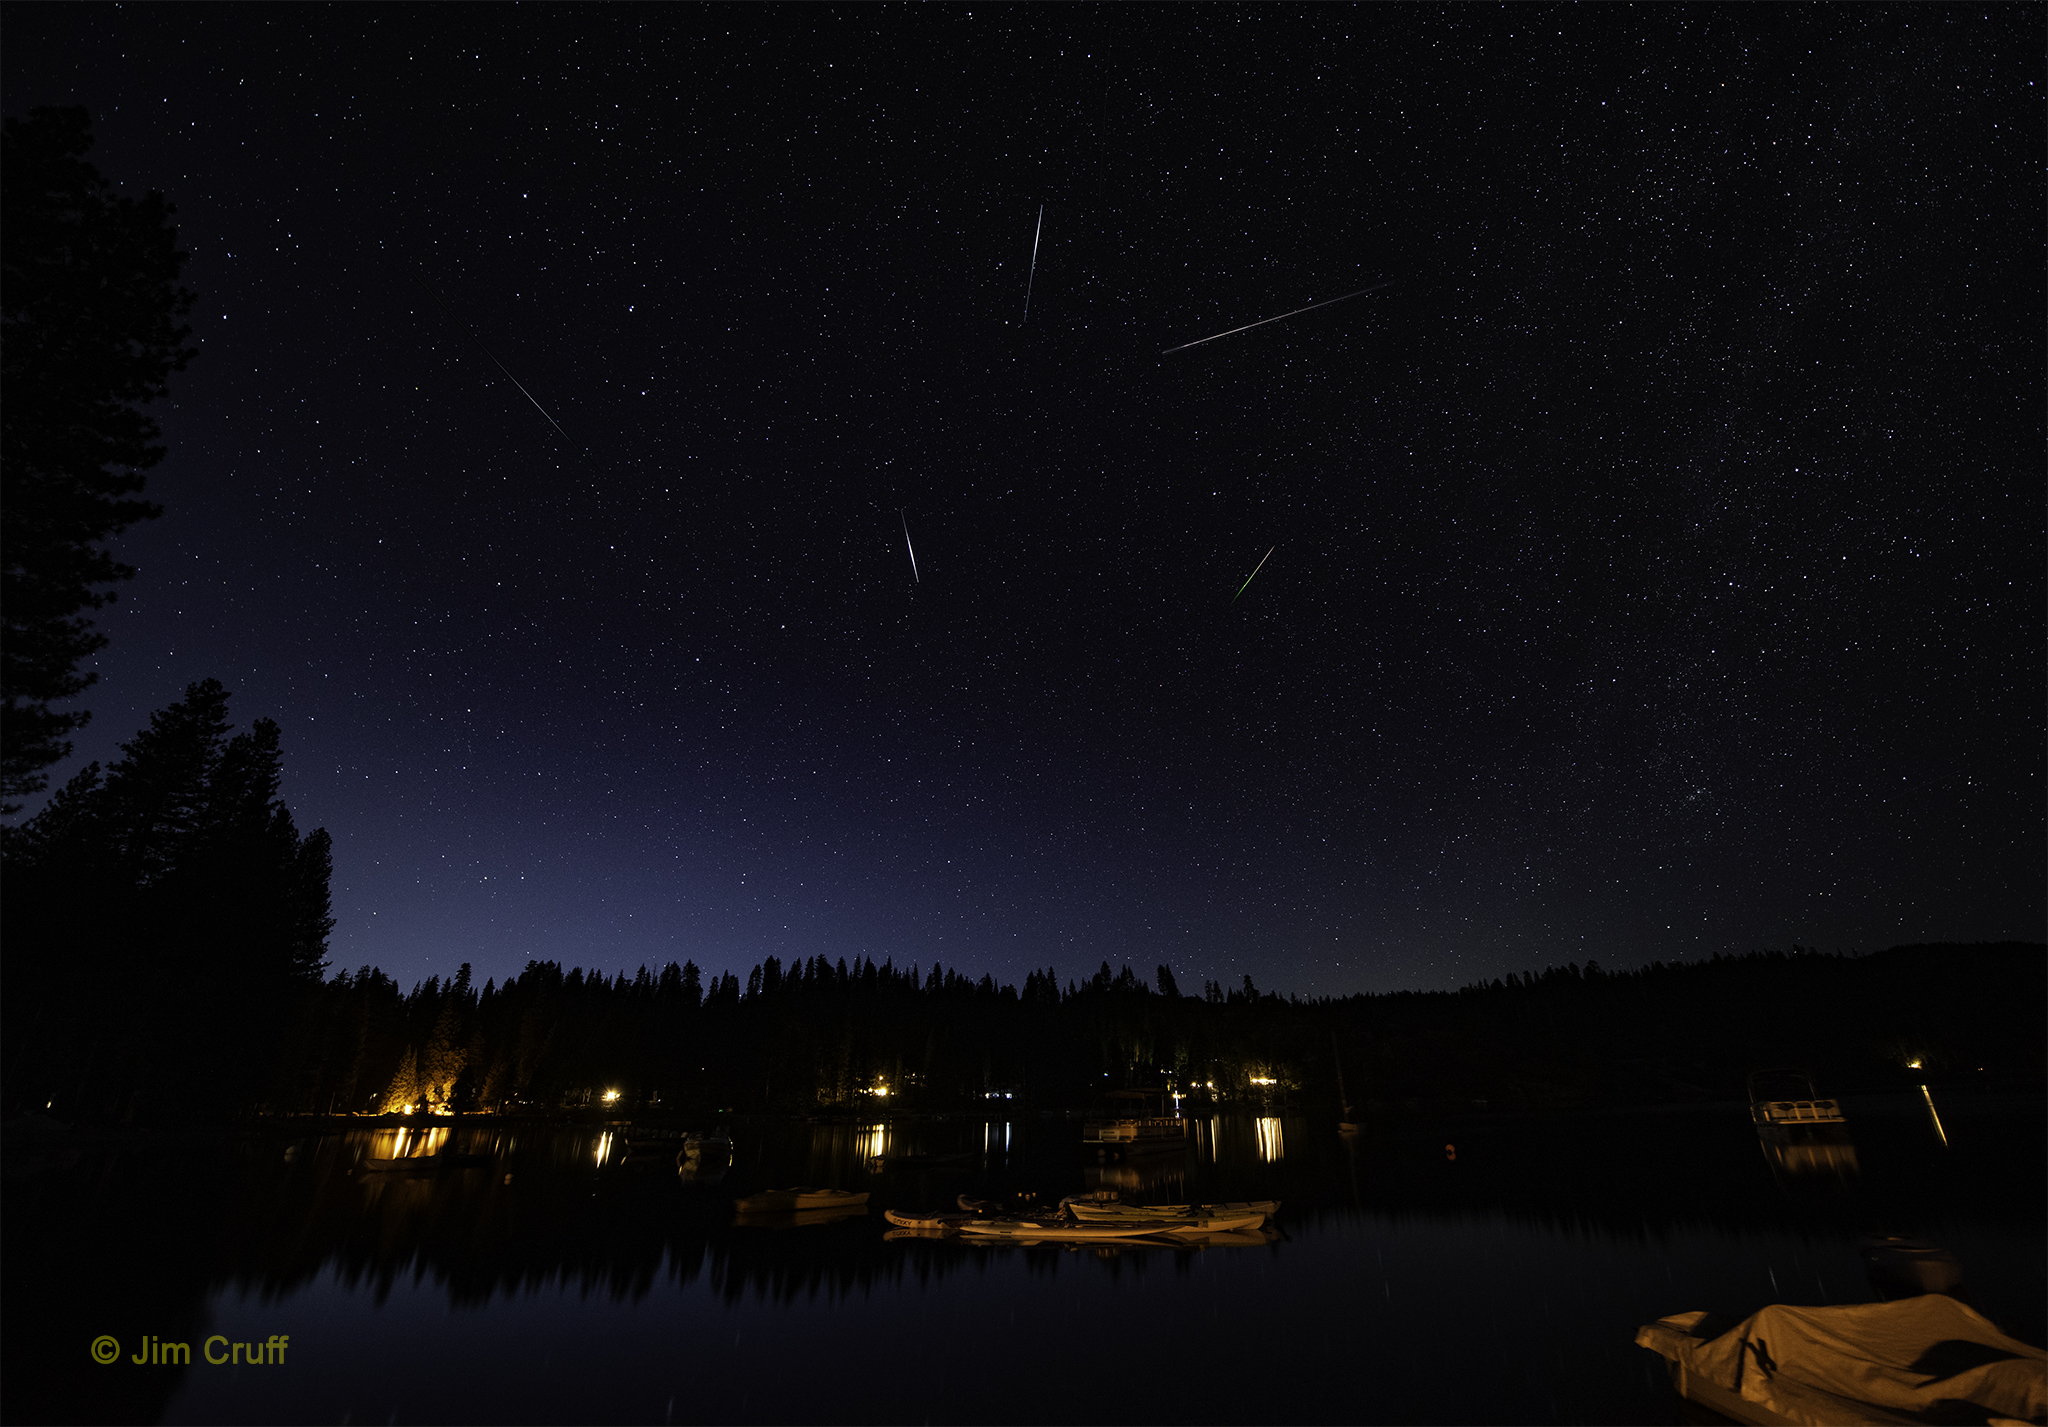 Summer Perseid meteor shower will peak on night of August 12